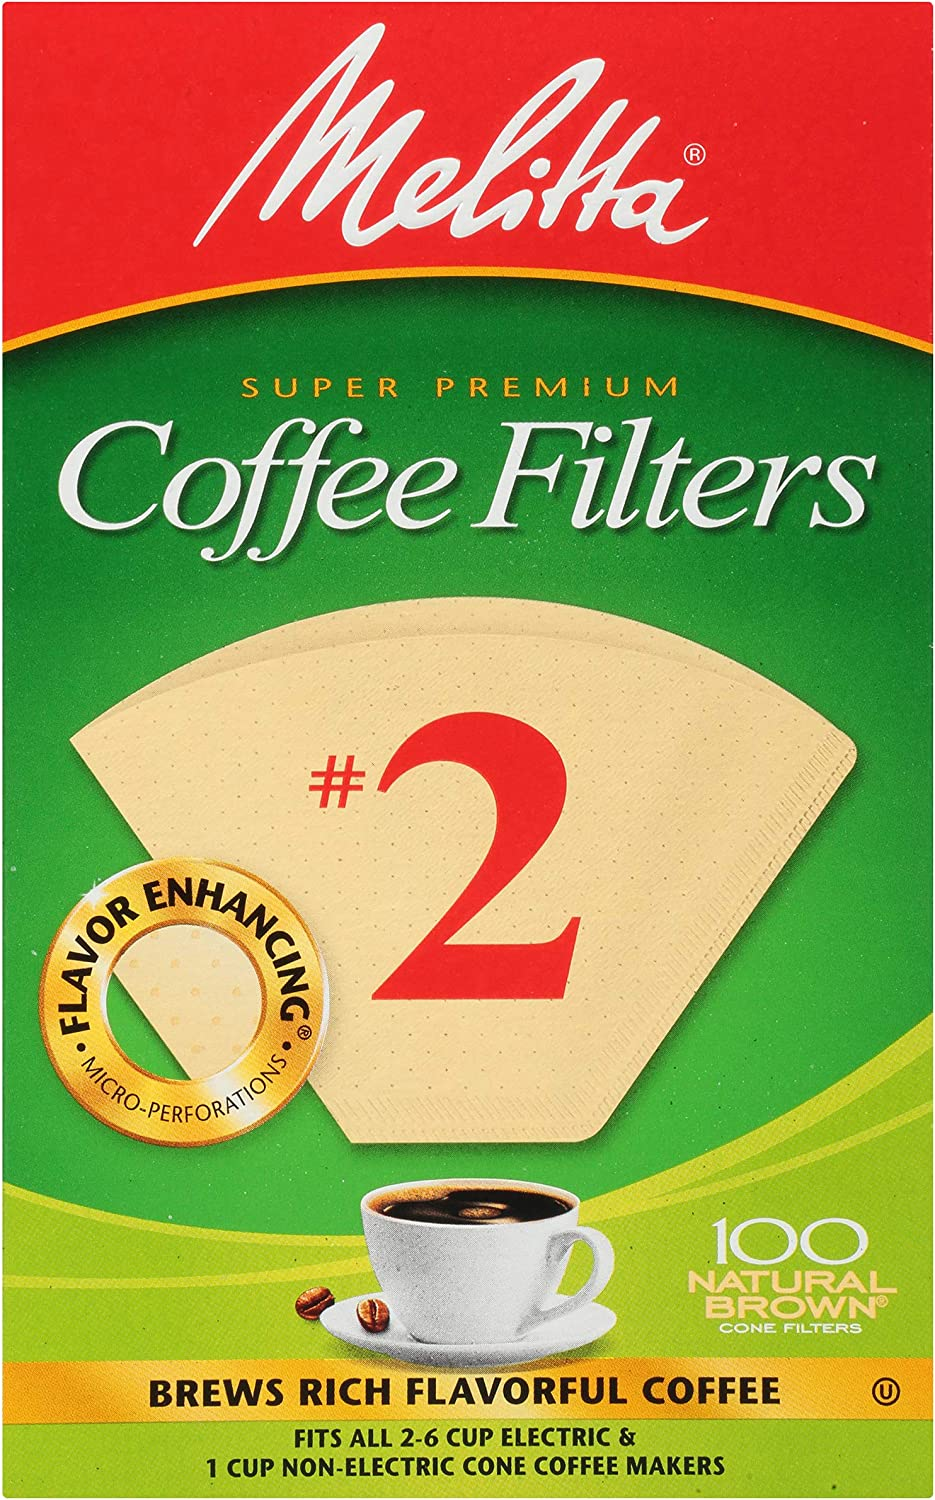 B001E5E0T2 Melitta No. 2 Unbleached Cone Coffee Filters, Natural Brown, 100 Count (Pack of 6) 91yNceDHmxL